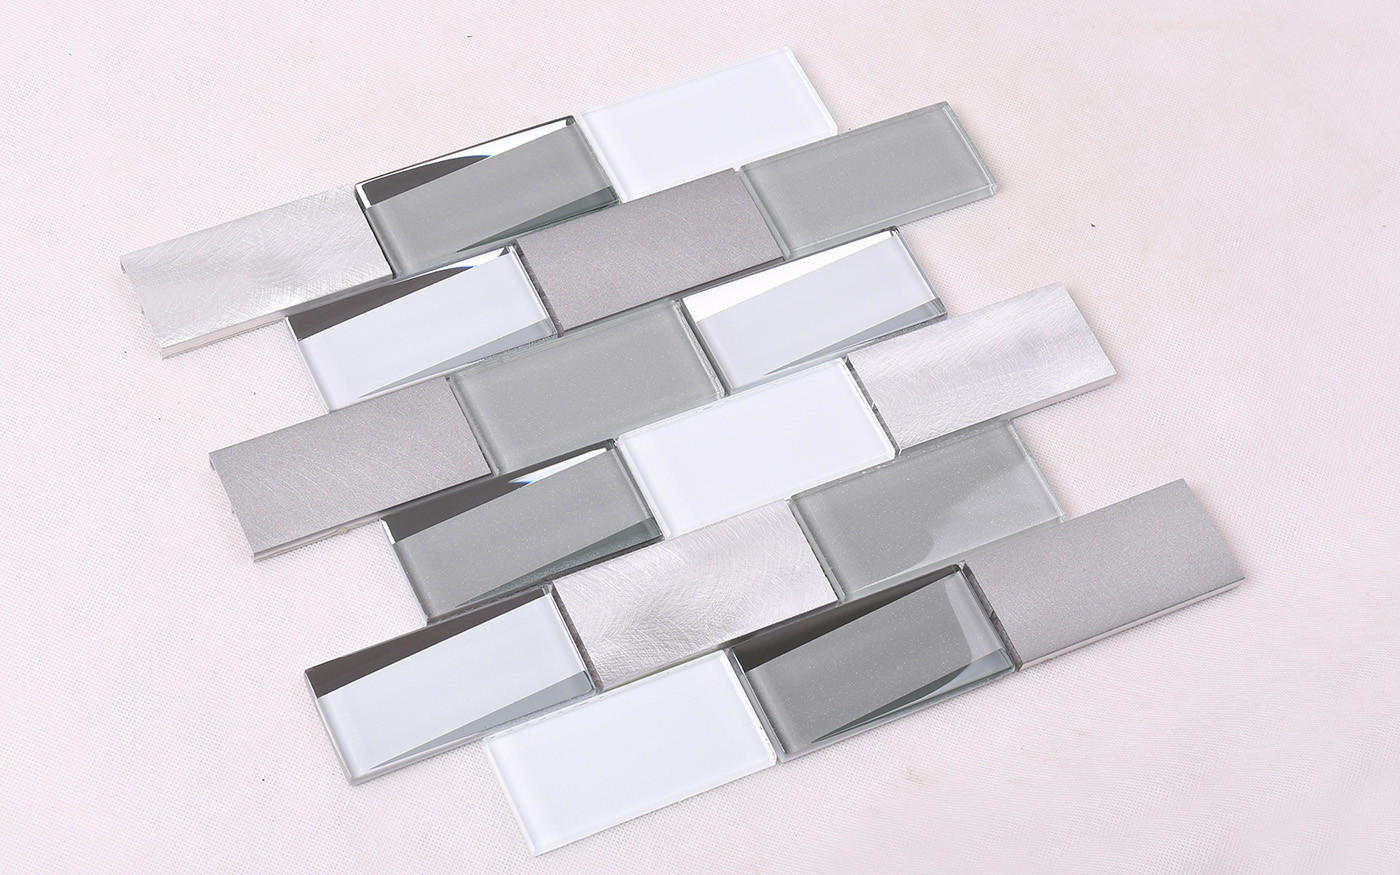 Heng Xing-Professional Herringbone Tile White Kitchen Backsplash Supplier